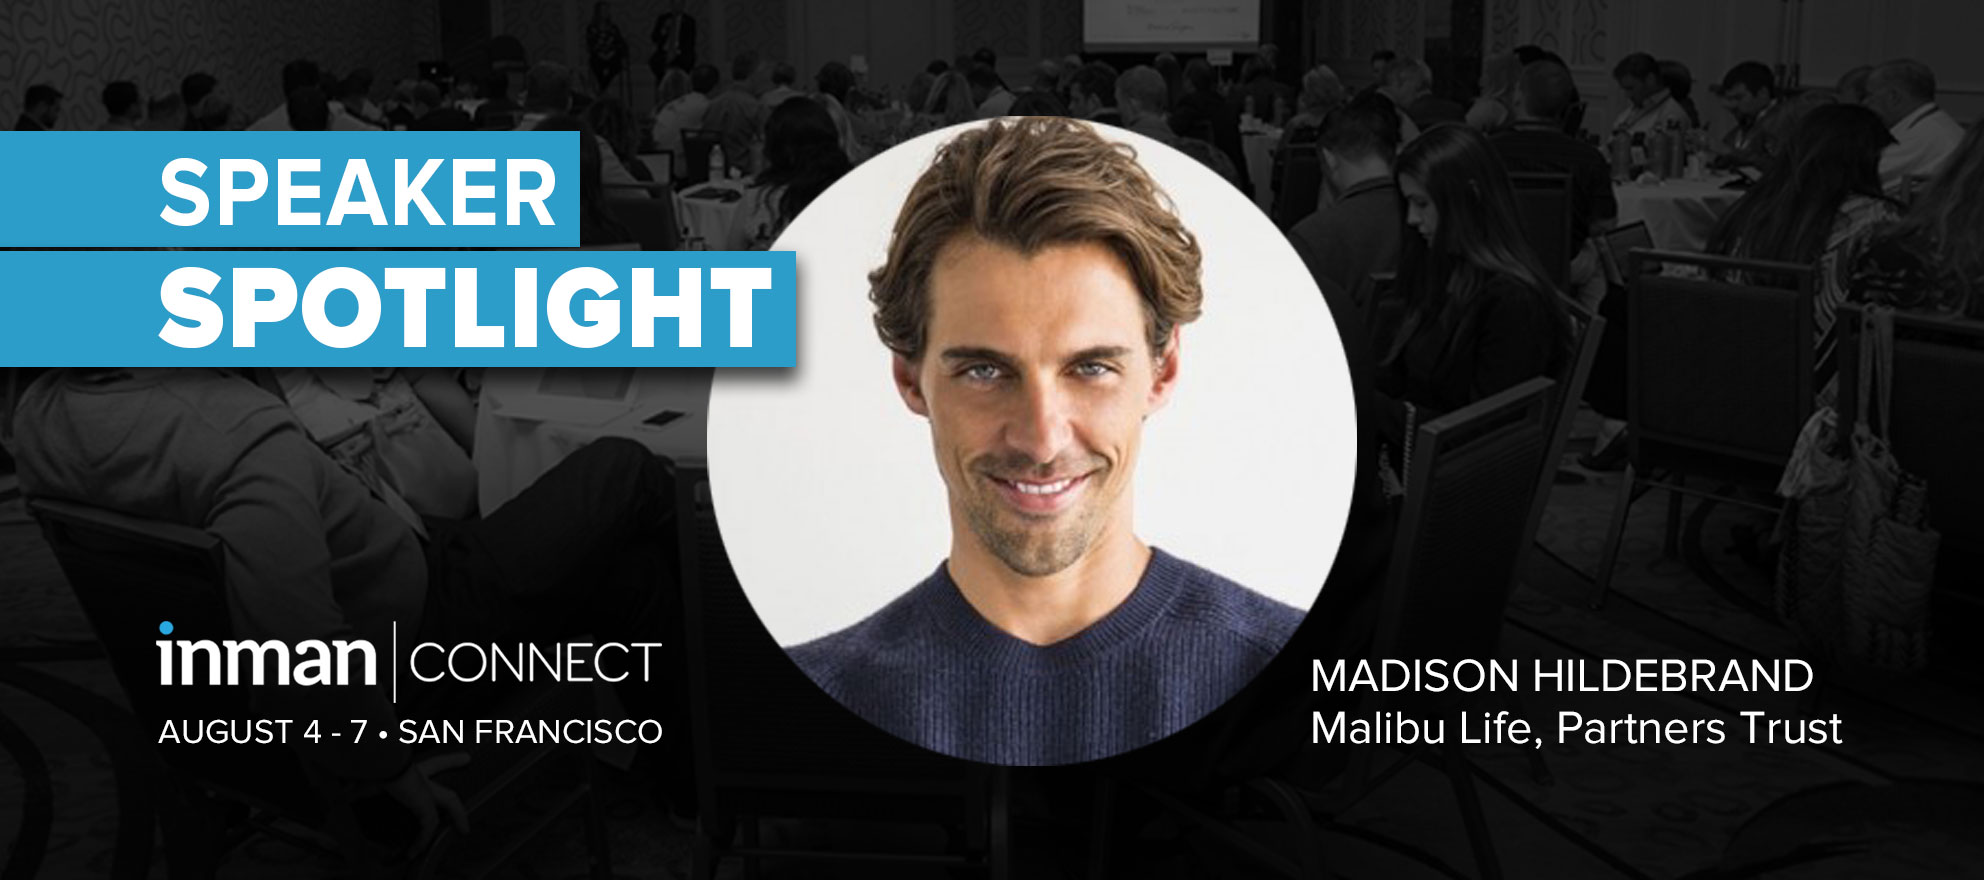 3 questions with Inman Connect speaker Madison Hildebrand